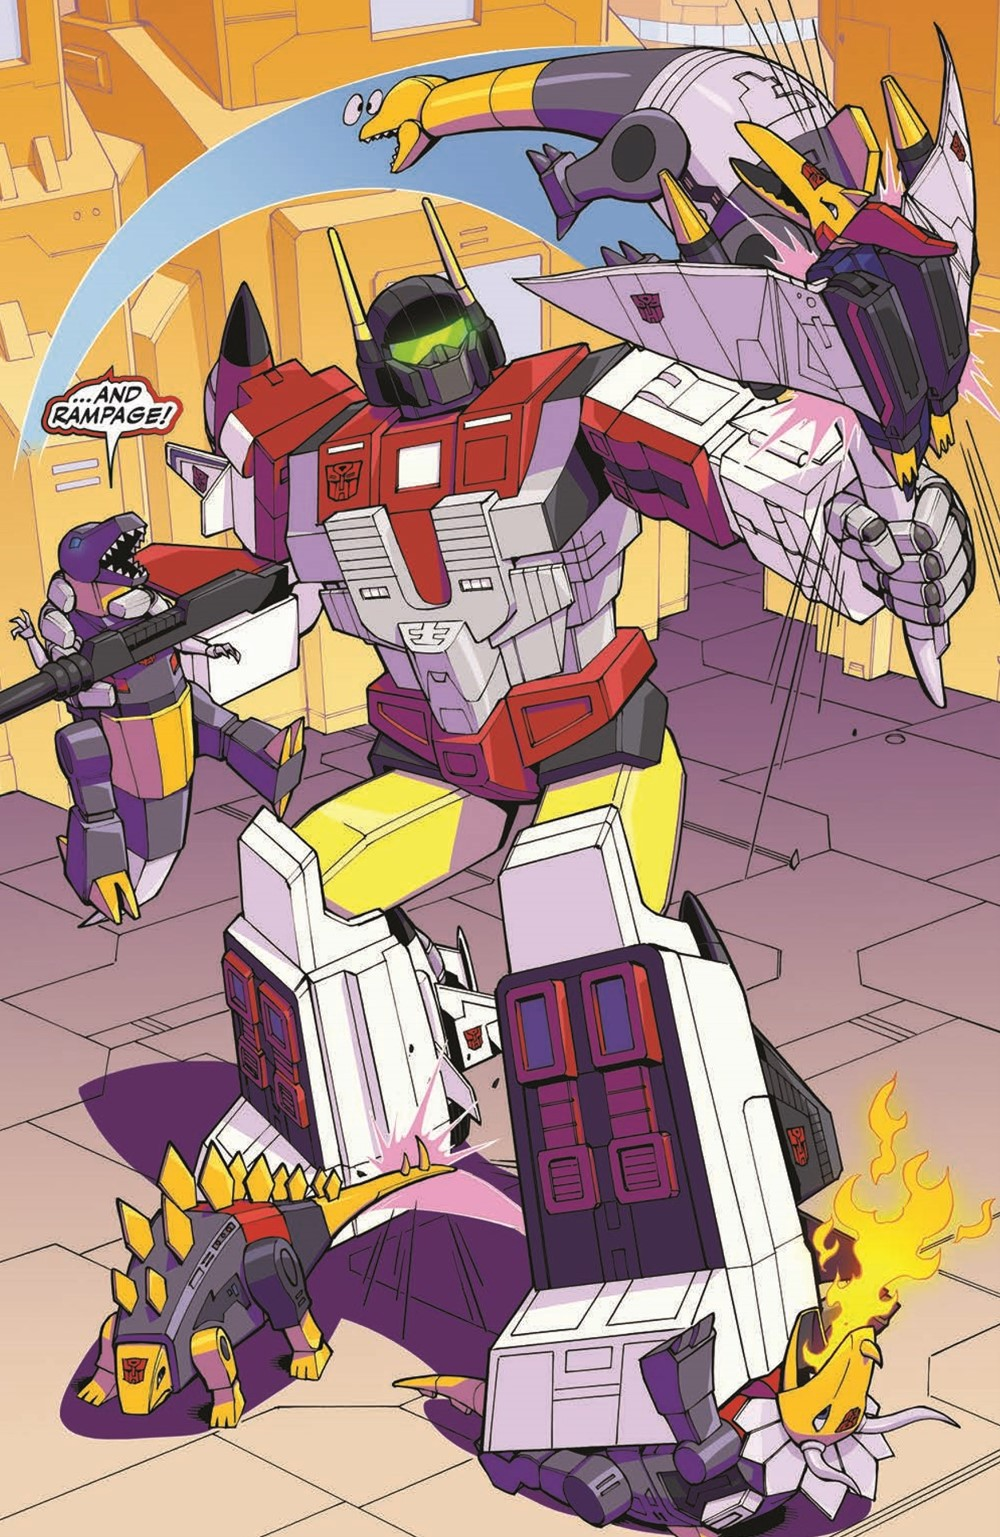 TFMLP2-04-pr-7 ComicList Previews: MY LITTLE PONY TRANSFORMERS II #4 (OF 4)